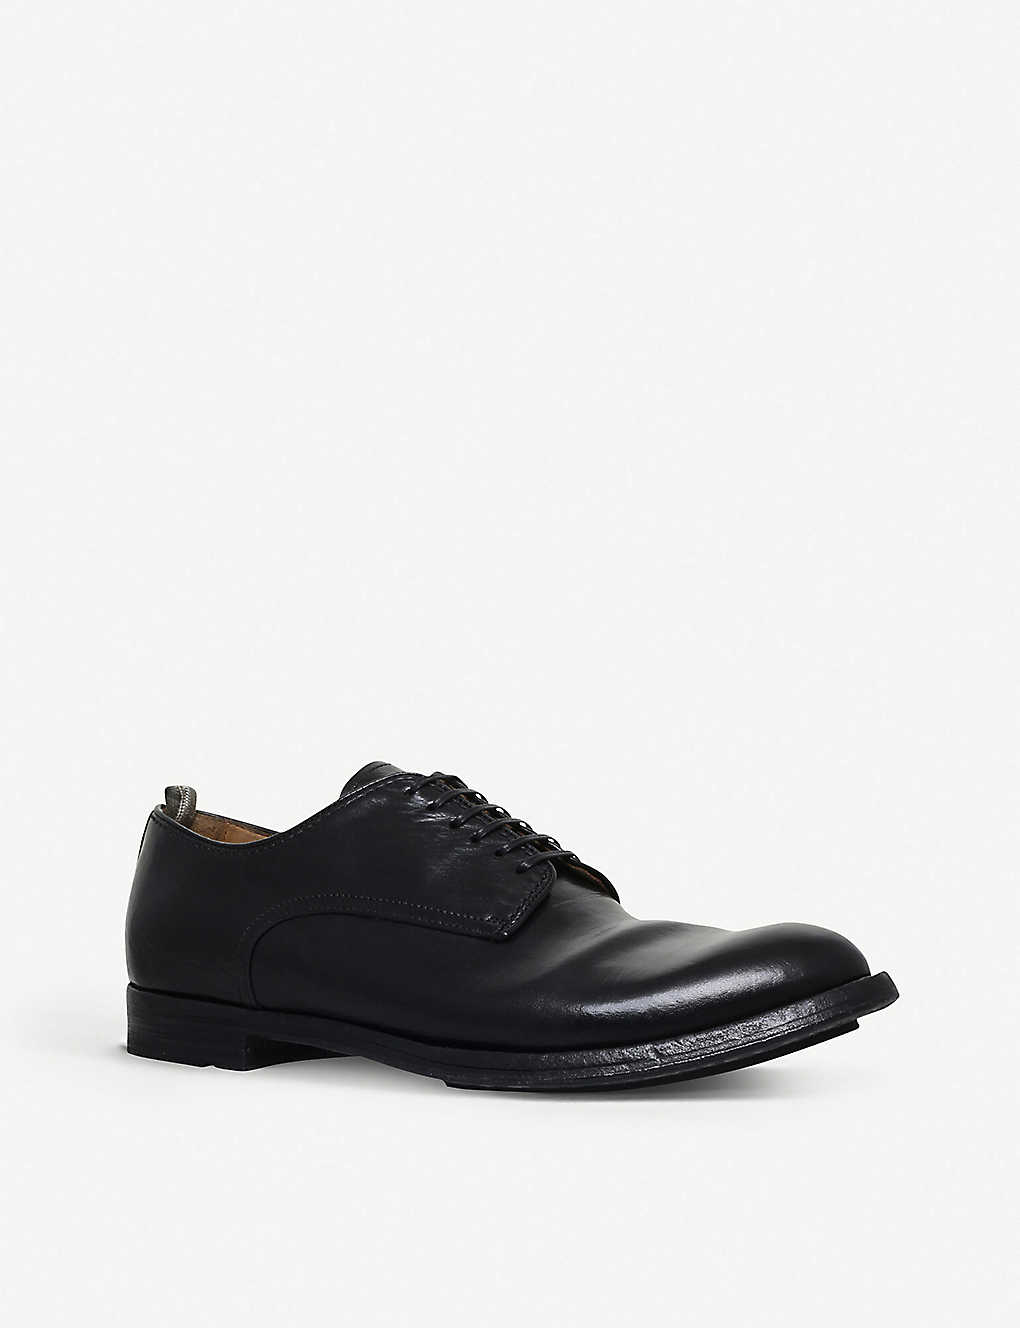 3616fac5a333 OFFICINE CREATIVE - 6-eyelet leather derby shoes